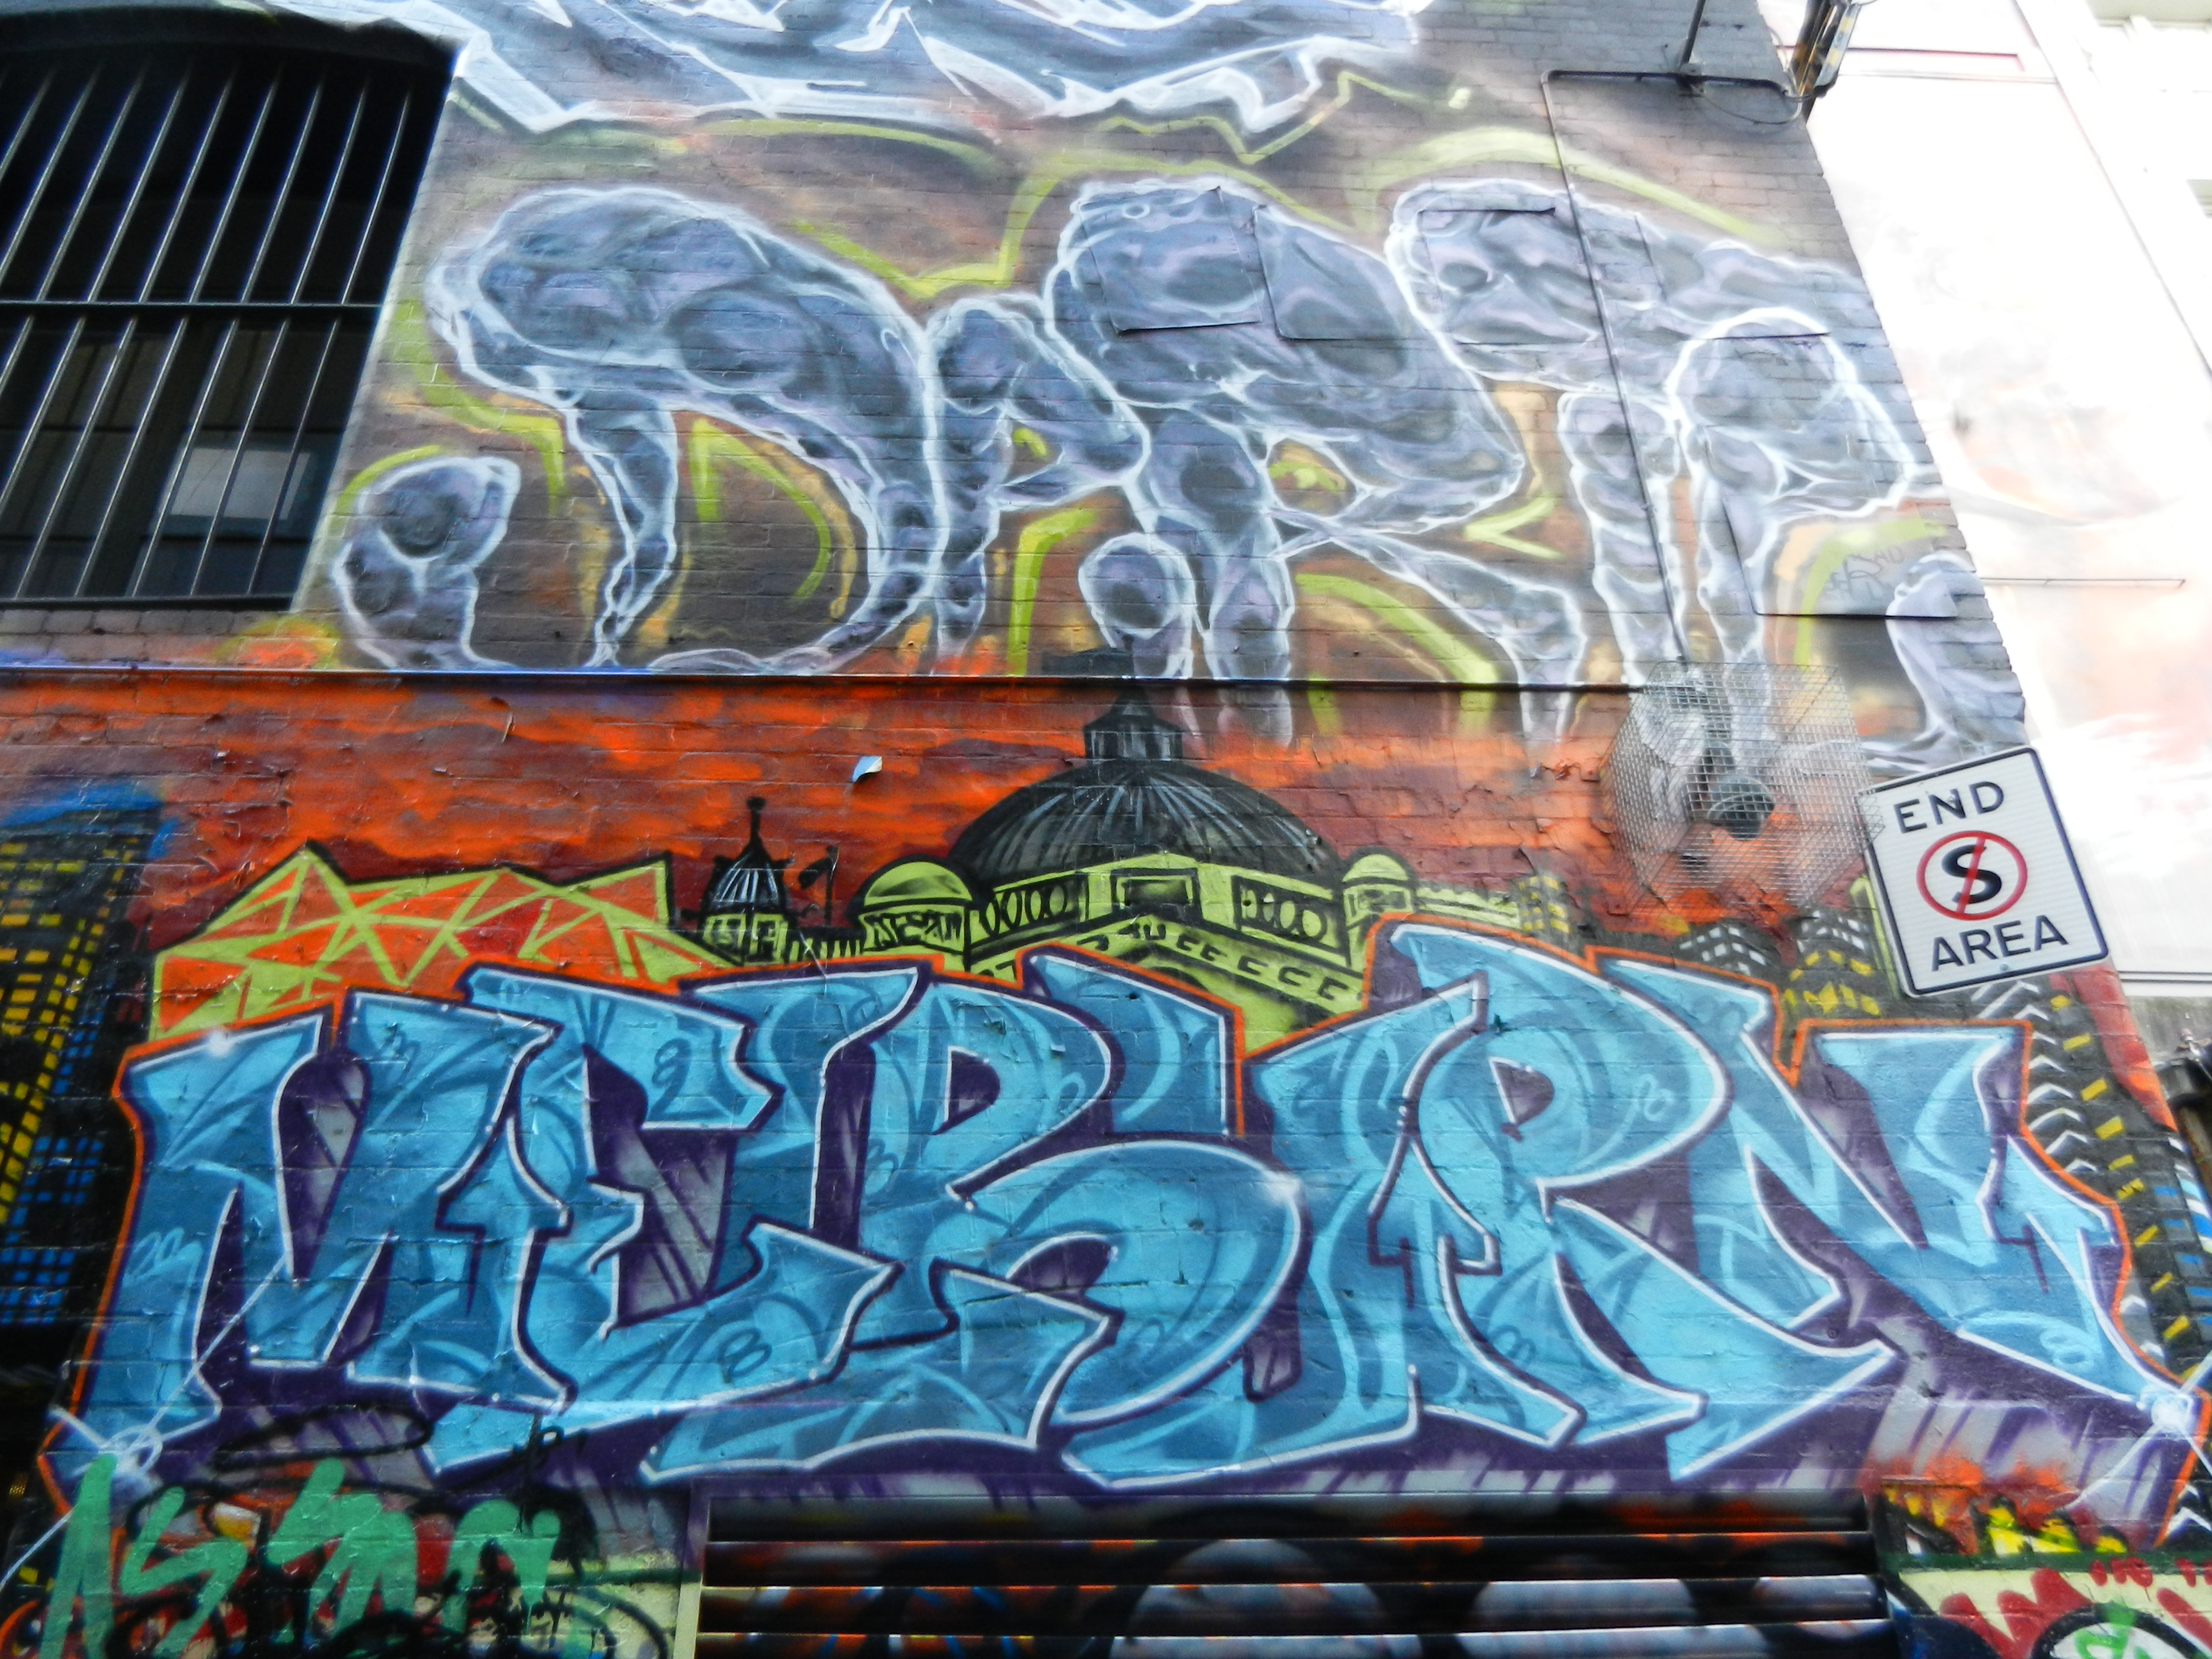 Graffiti style painting that reads Melbourne in blue paint on a yellow red, and green background.